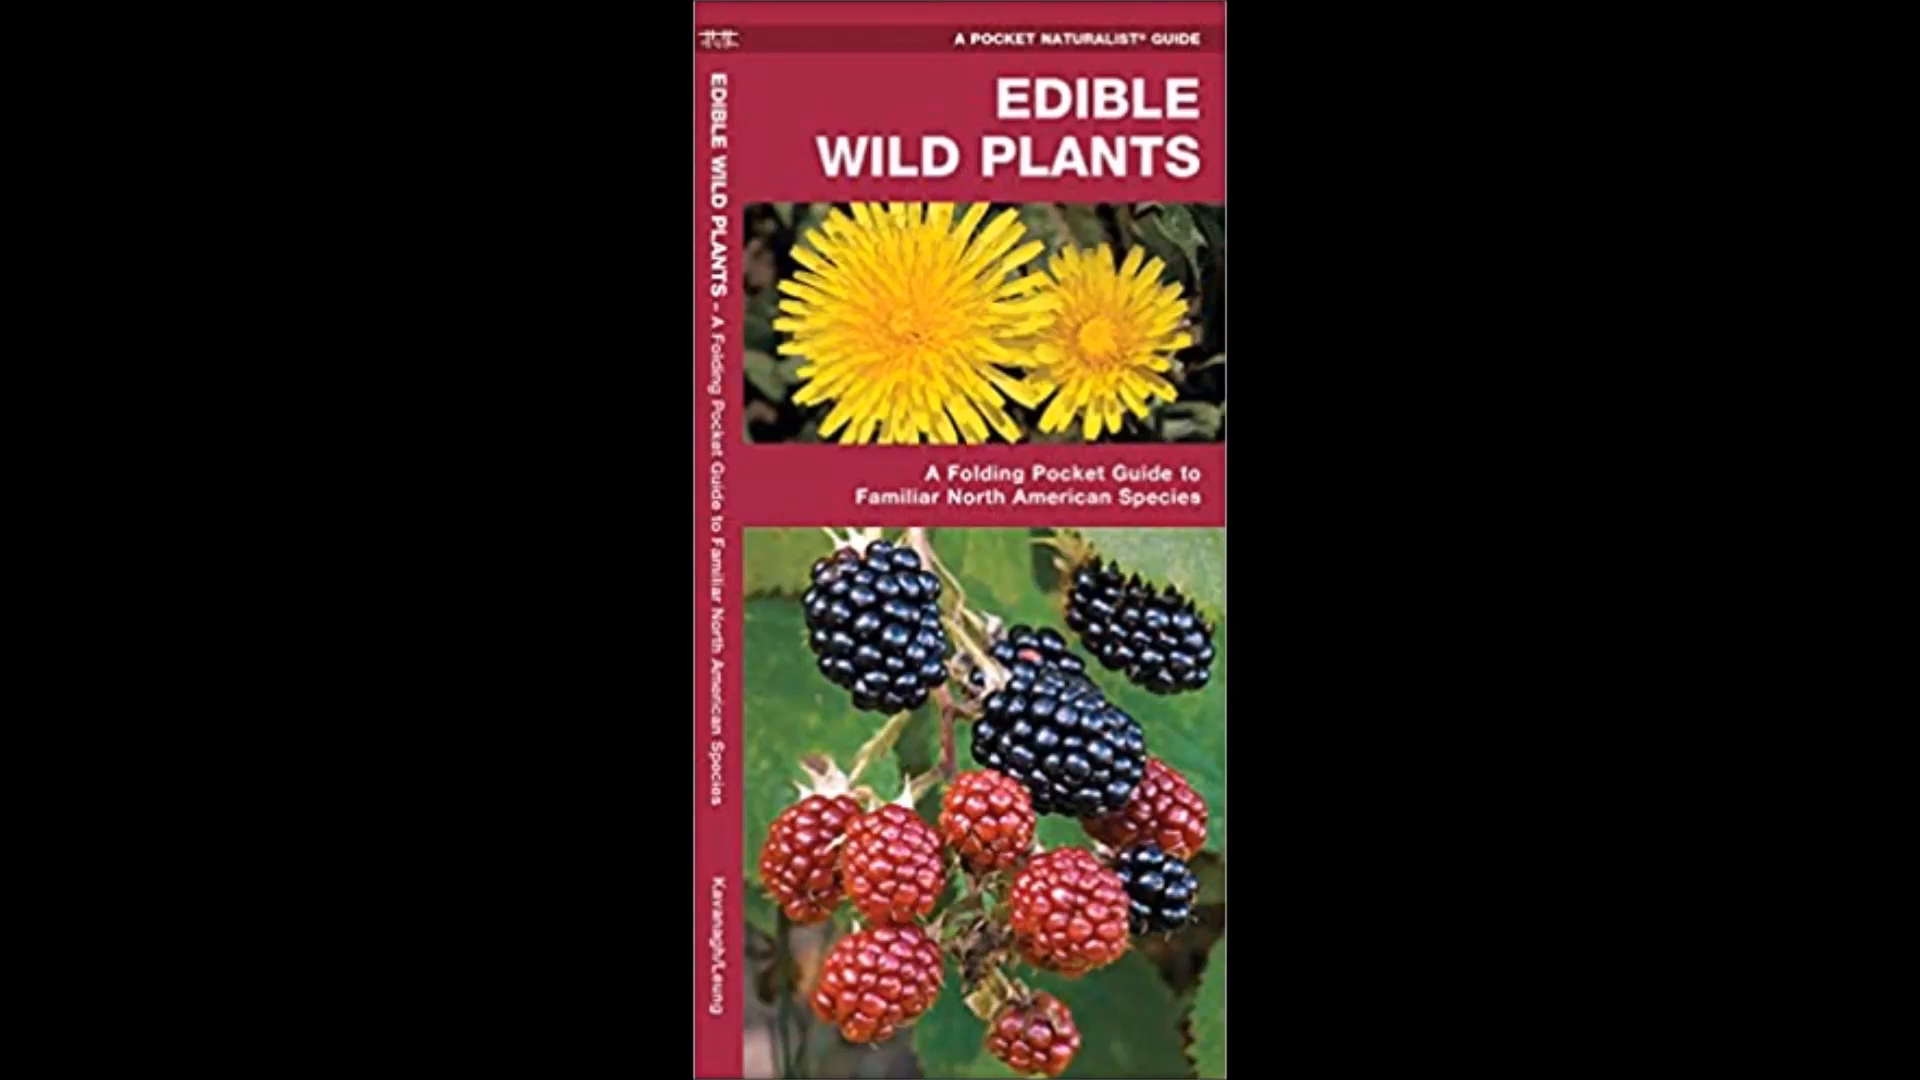 Edible Wild Plants - Books to Study!